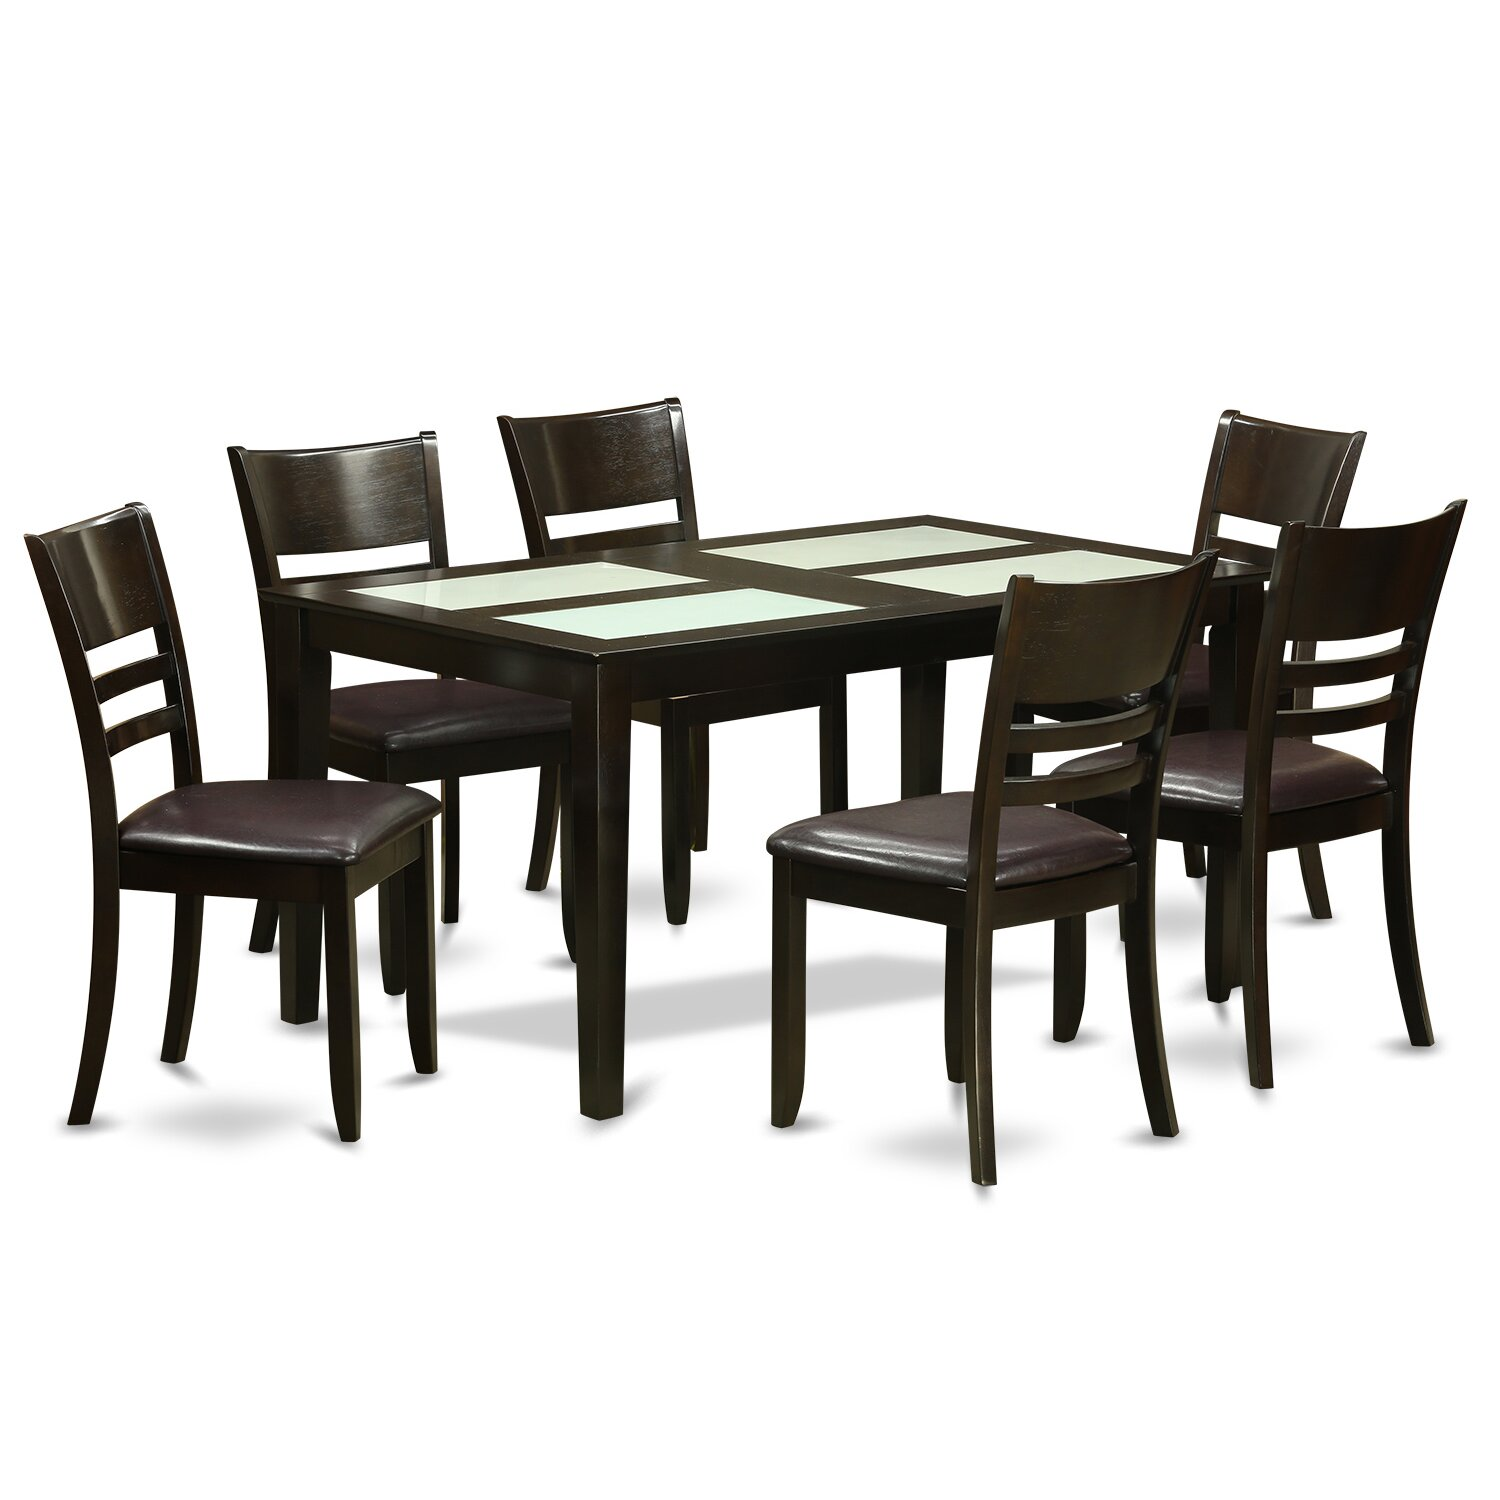 Wooden importers capri 7 piece dining set wayfair for Kitchen table set 6 chairs